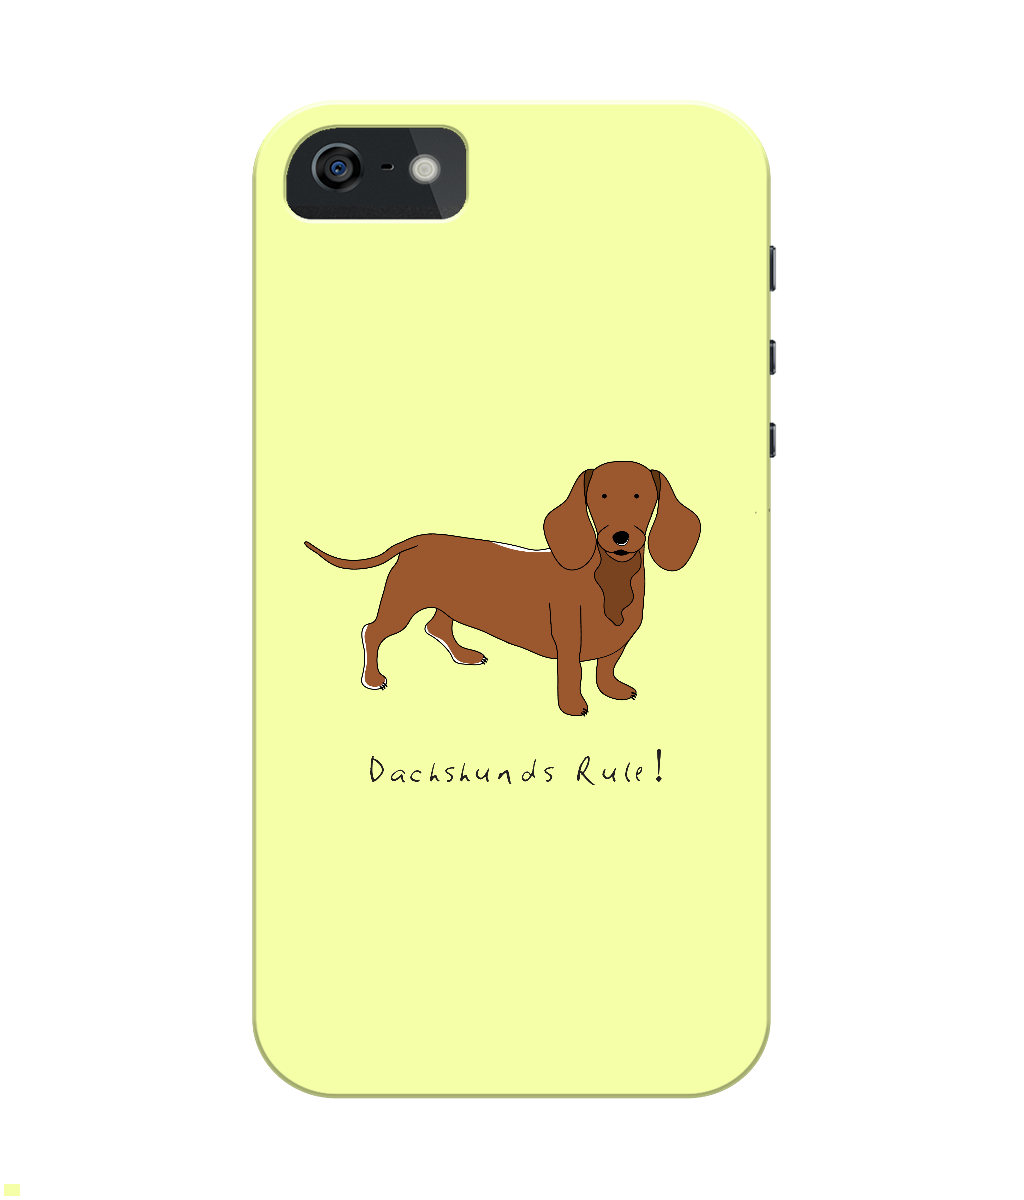 iPhone 4/4s Full Wrap Case - Dachshunds Rule! - Dogs Rule!